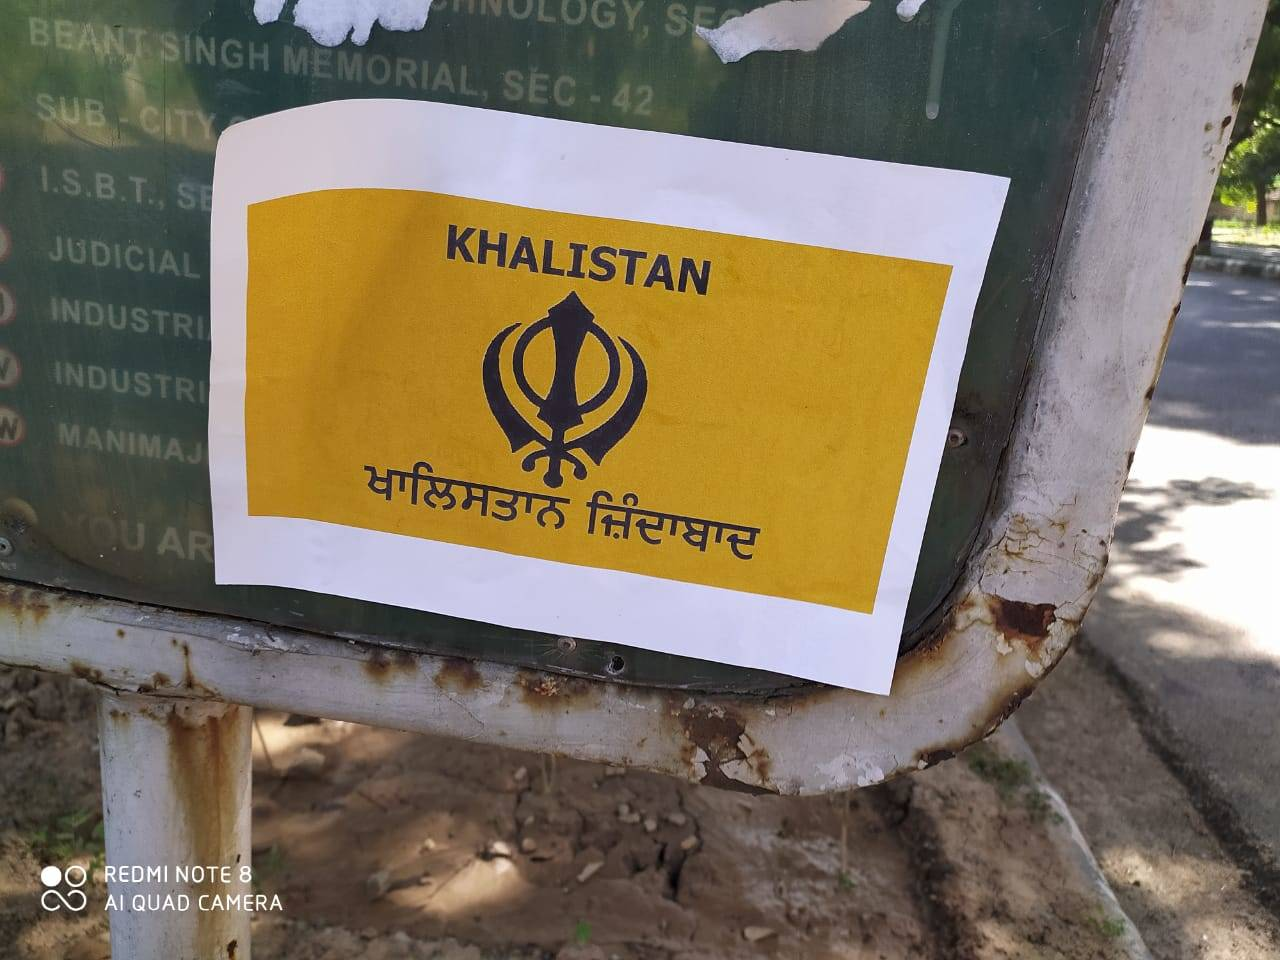 timesofindia.indiatimes.com: Why the US shouldn't ignore Pak-supported Khalistanis operating from its soil